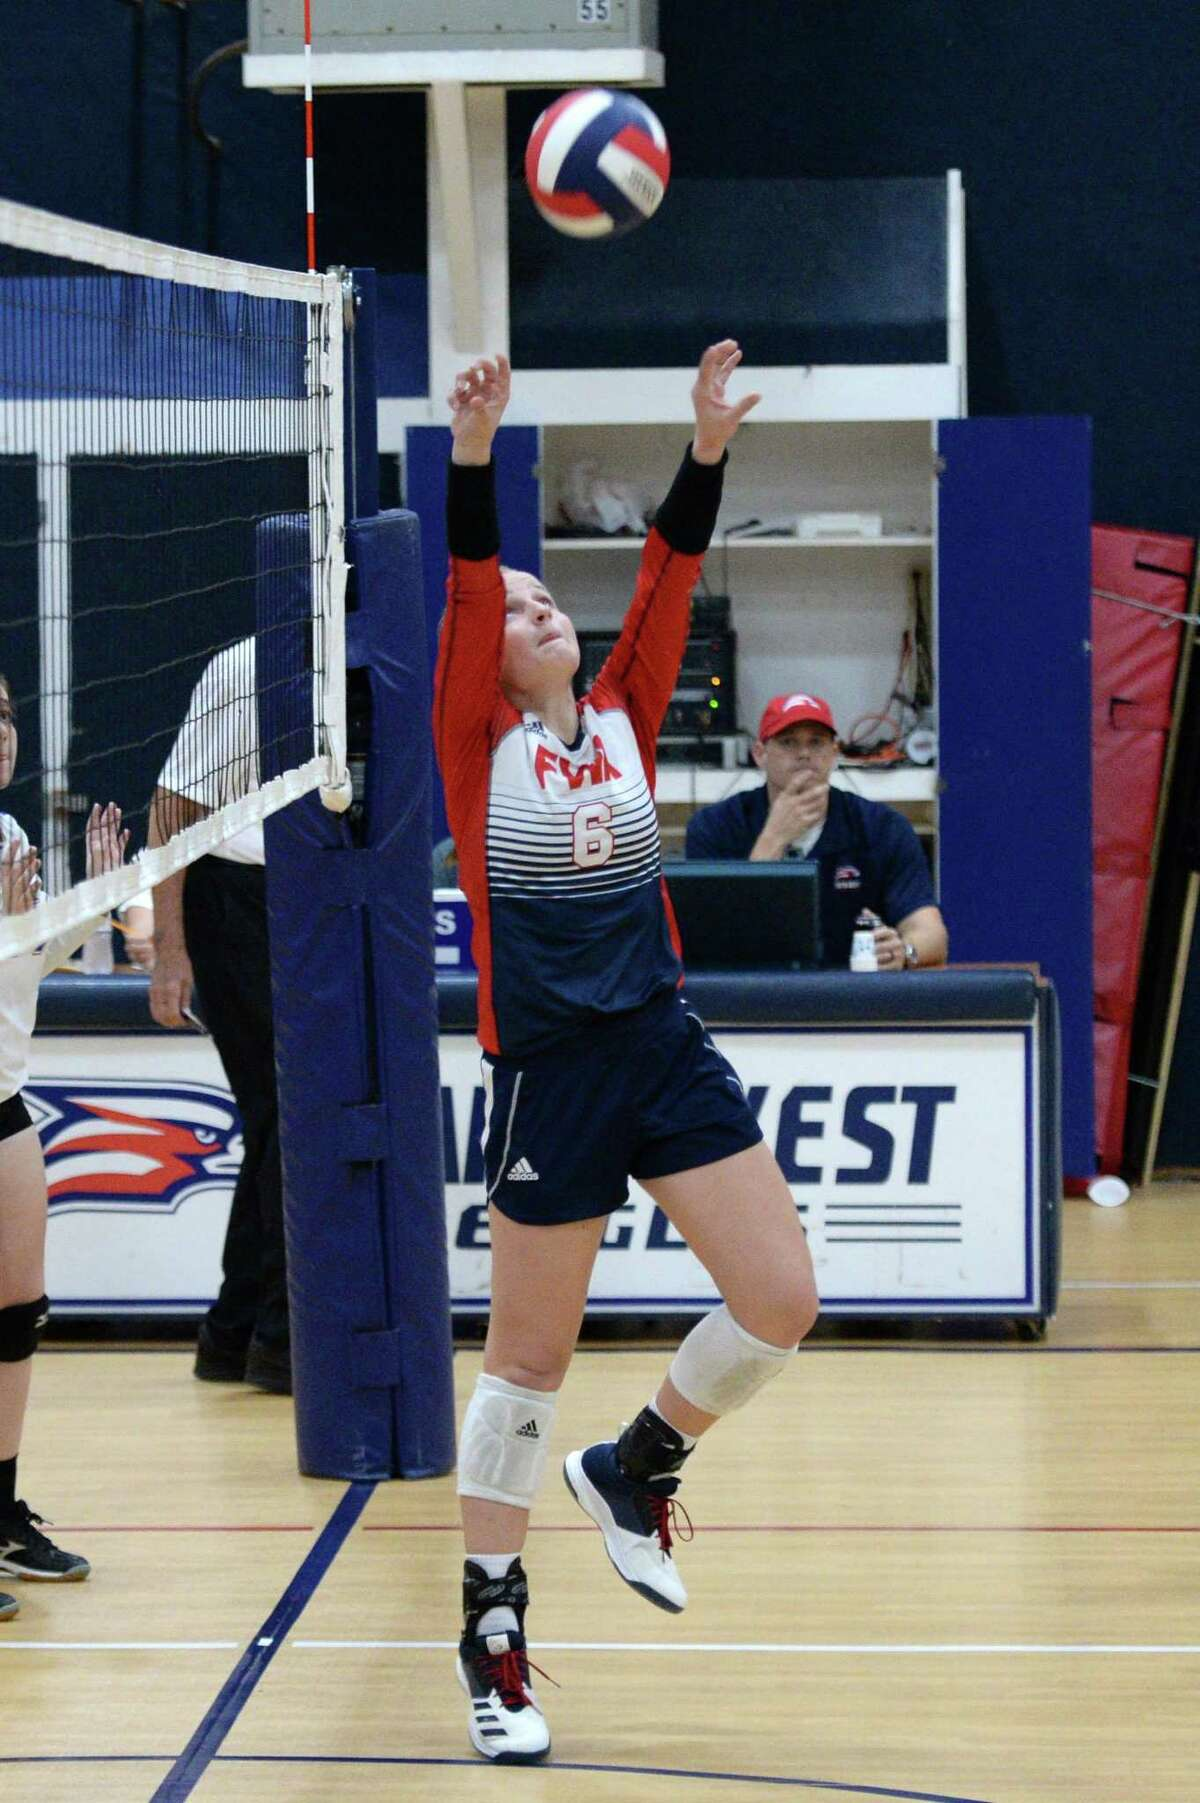 Haley Muse of Faith West, shown last season, was named first-team all-state in TAPPS Class 4A.